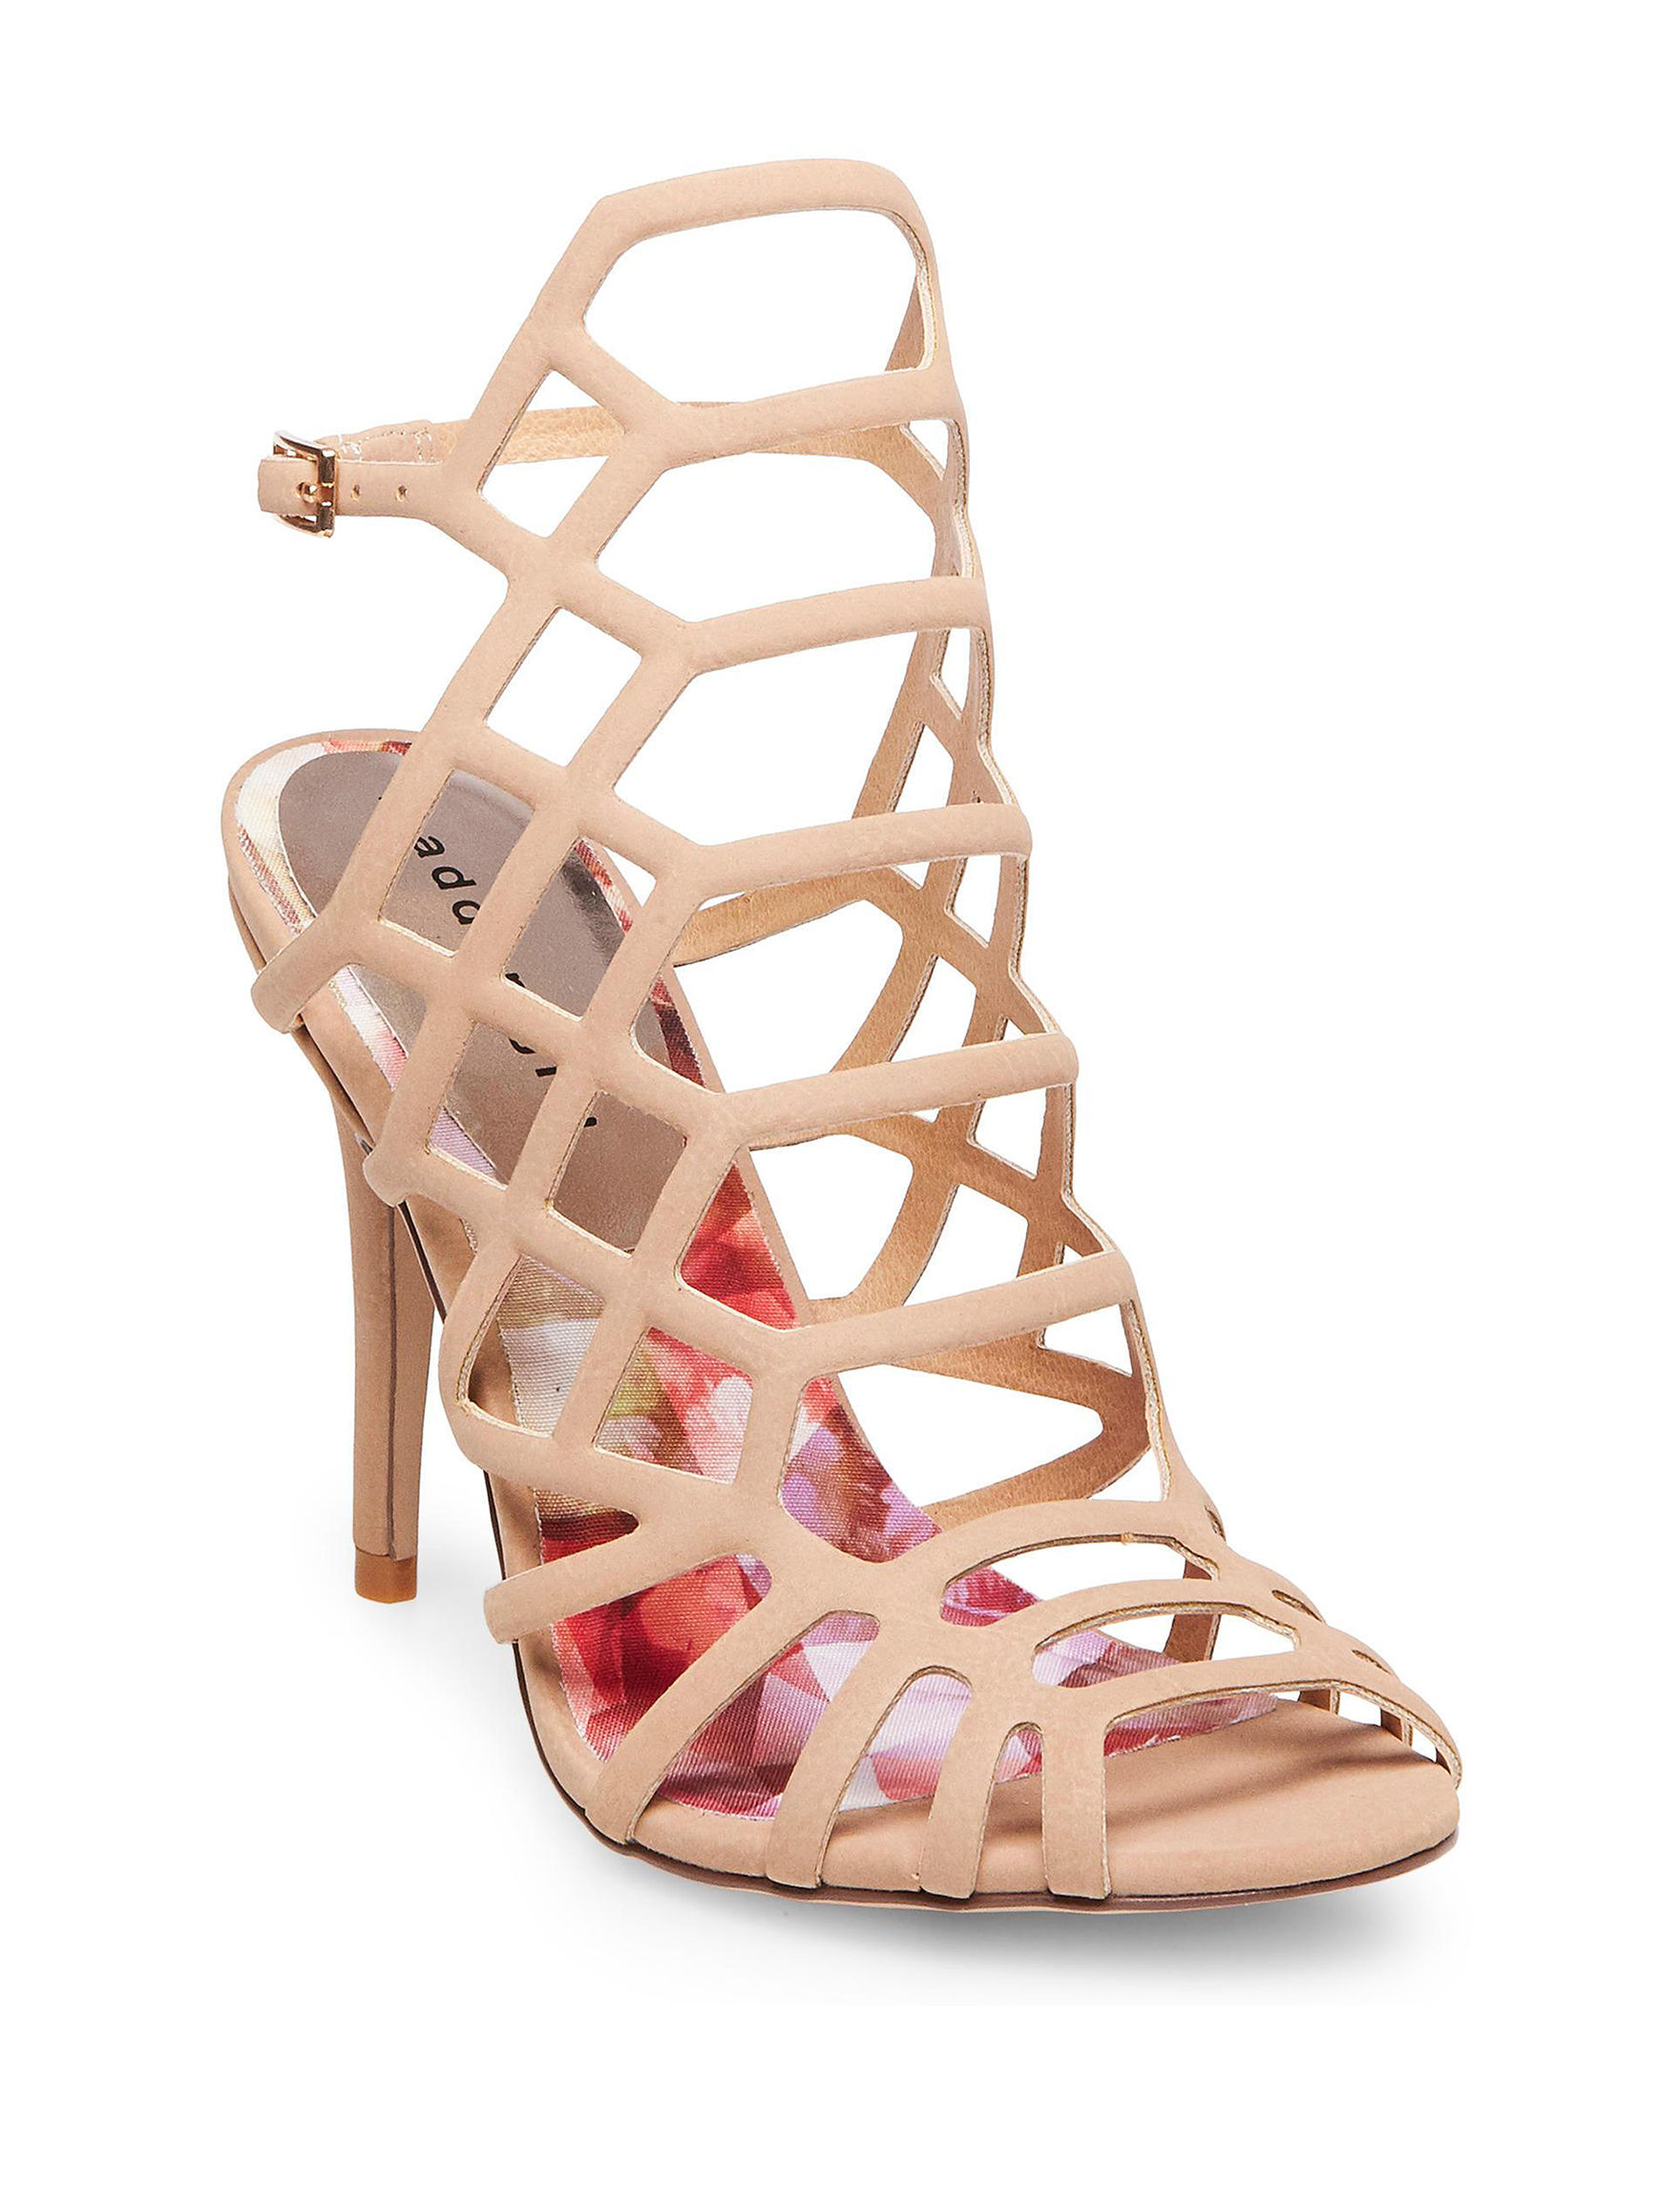 Madden Girl Nude Heeled Sandals